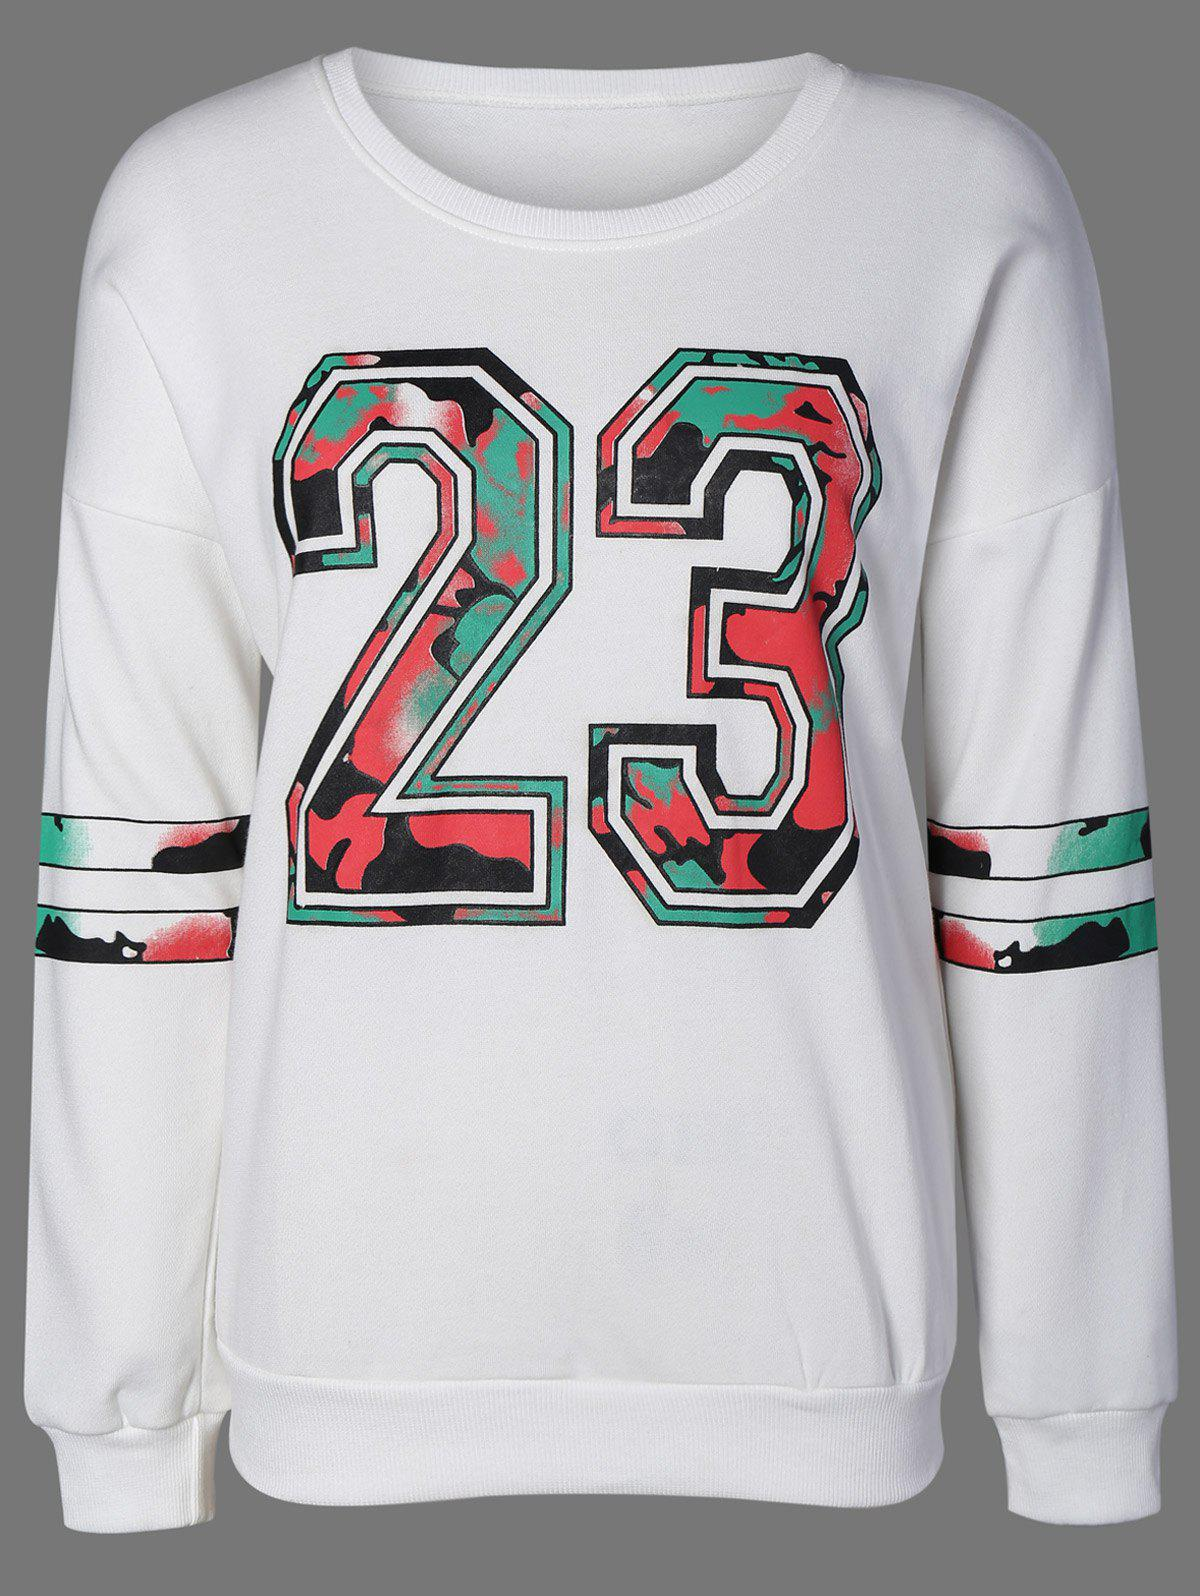 Plus Size 23 Graphic Striped SweatshirtWOMEN<br><br>Size: 5XL; Color: WHITE; Material: Polyester; Shirt Length: Long; Sleeve Length: Full; Style: Streetwear; Pattern Style: Figure; Season: Fall,Spring; Weight: 0.470kg; Package Contents: 1 x Sweatshirt;